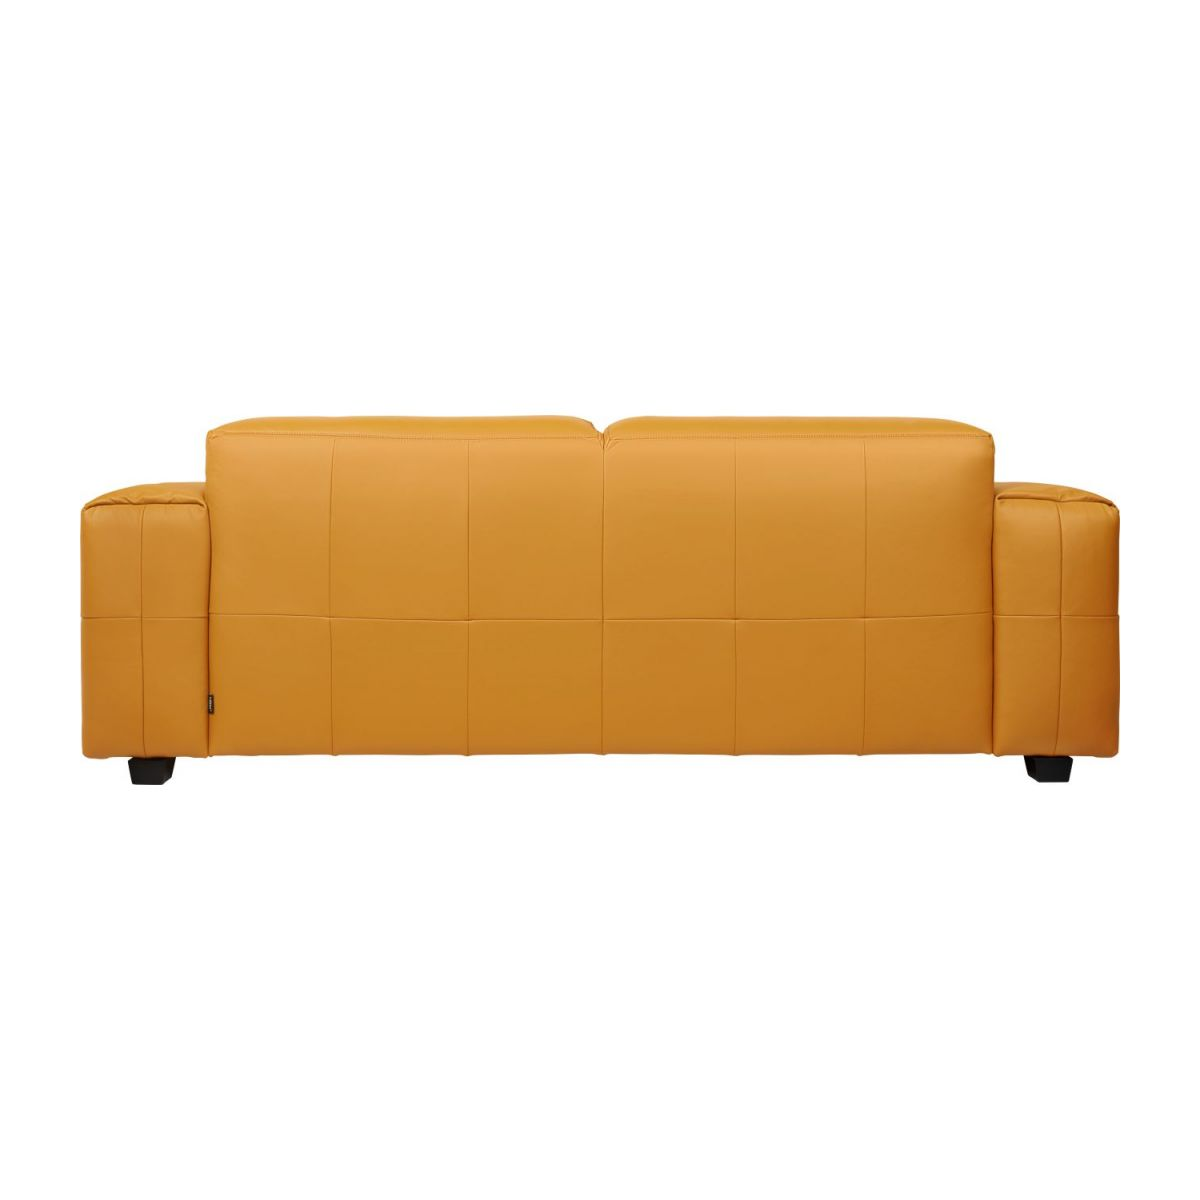 3 seater sofa in Savoy semi-aniline leather, cognac n°4